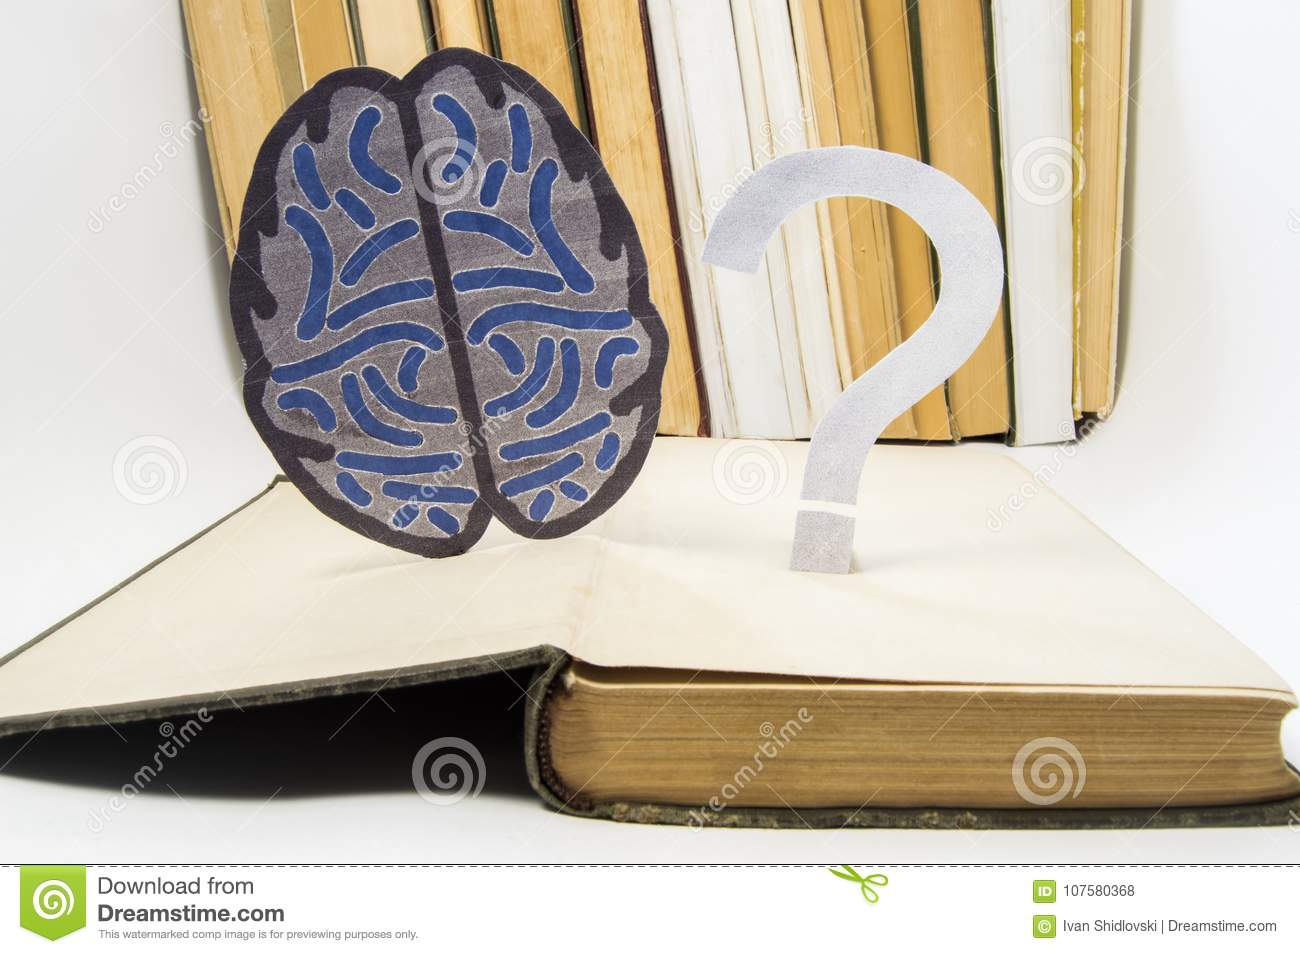 Paper brain silhouette and question mark is over old open medical book. Photo to refer issues and questions in study of brain, as